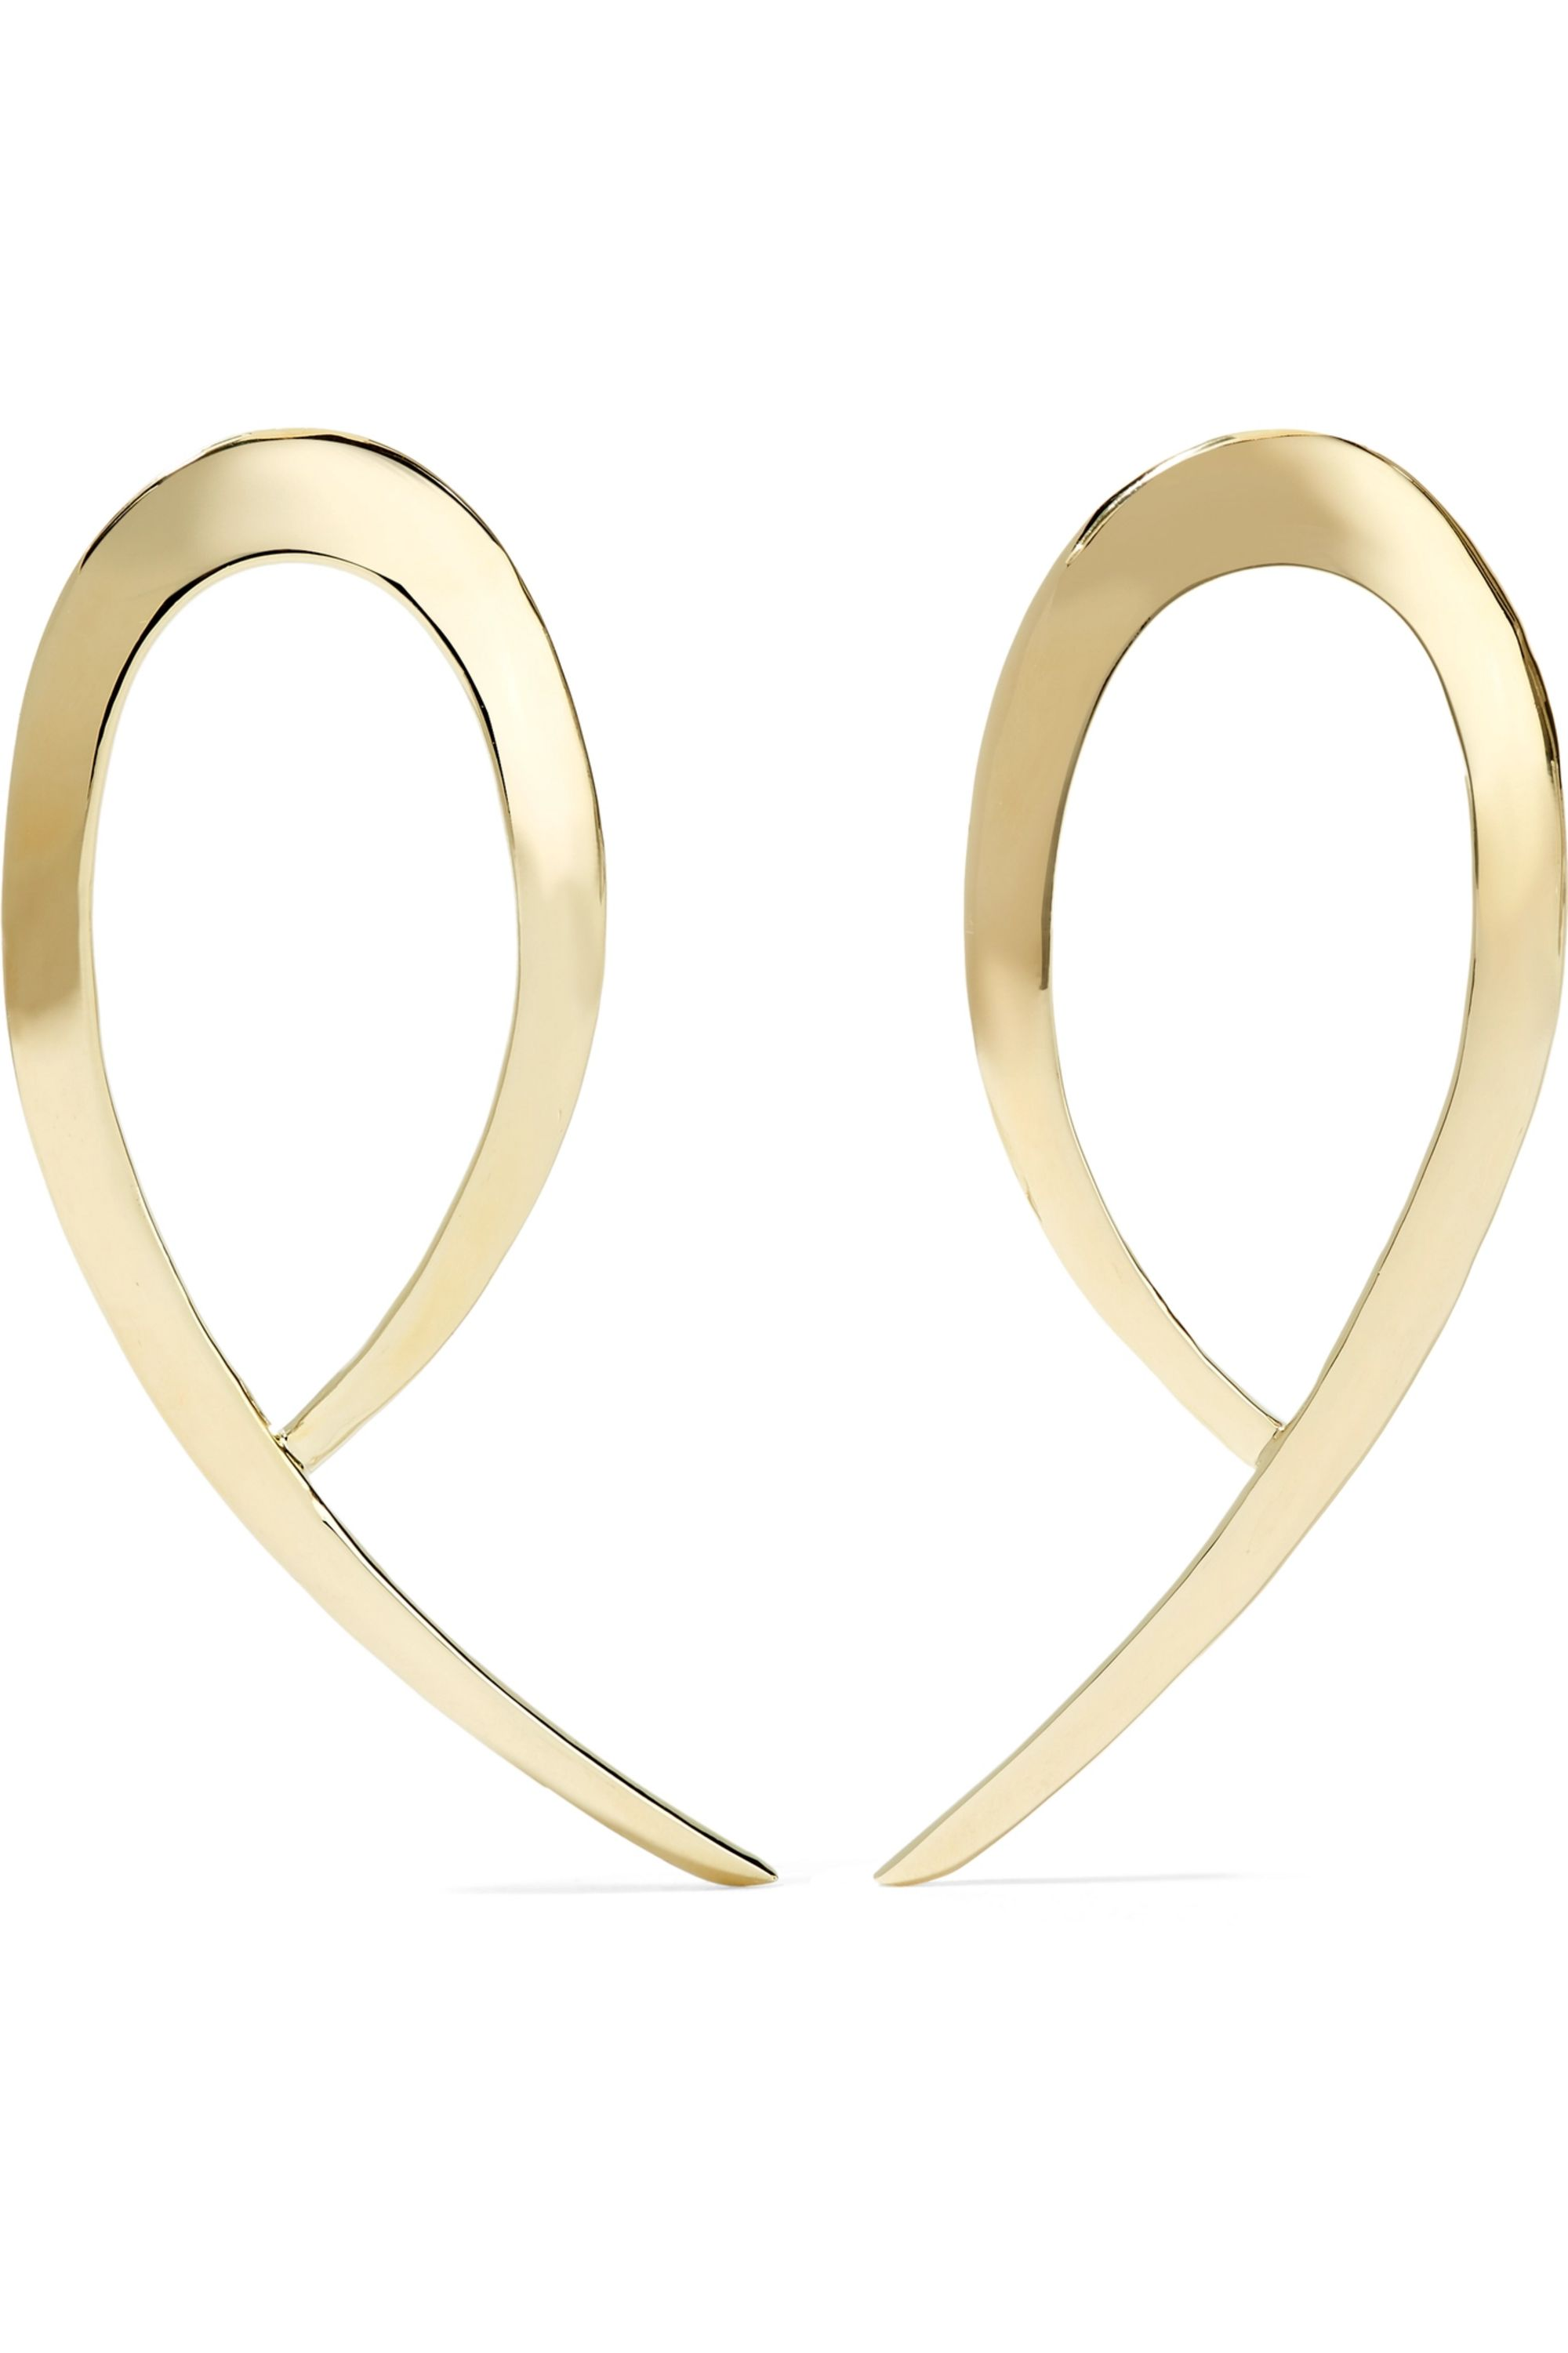 Jennifer Fisher XL Root gold-plated earrings